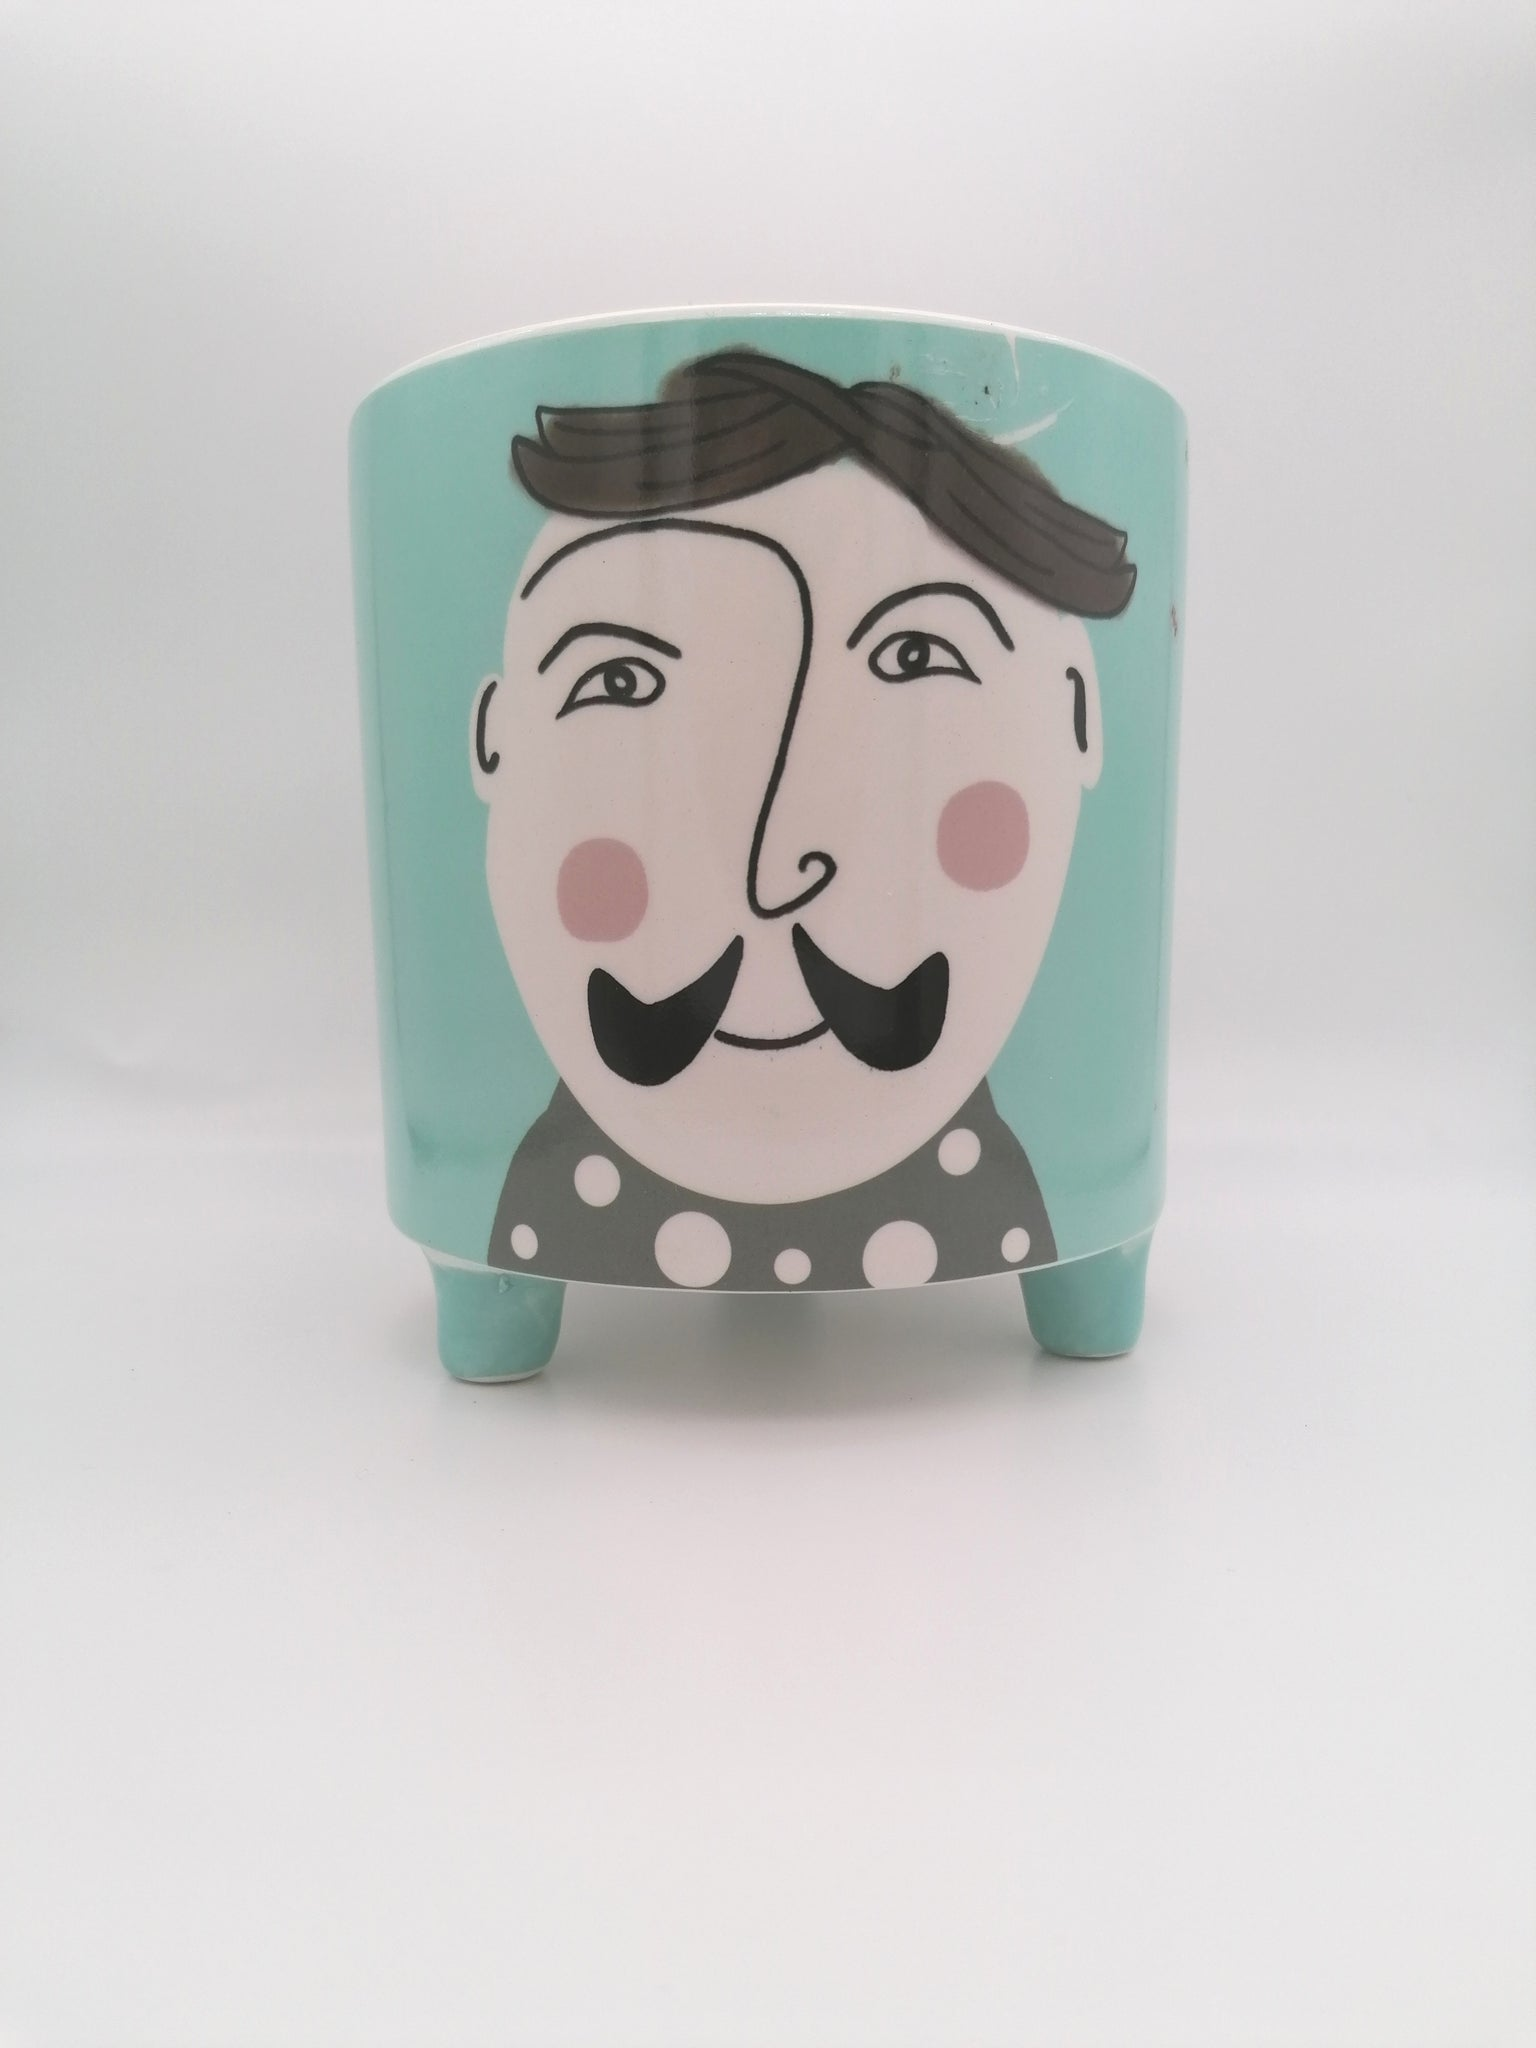 Imperfect Hipster Josh #1 Planter - Ø12cm